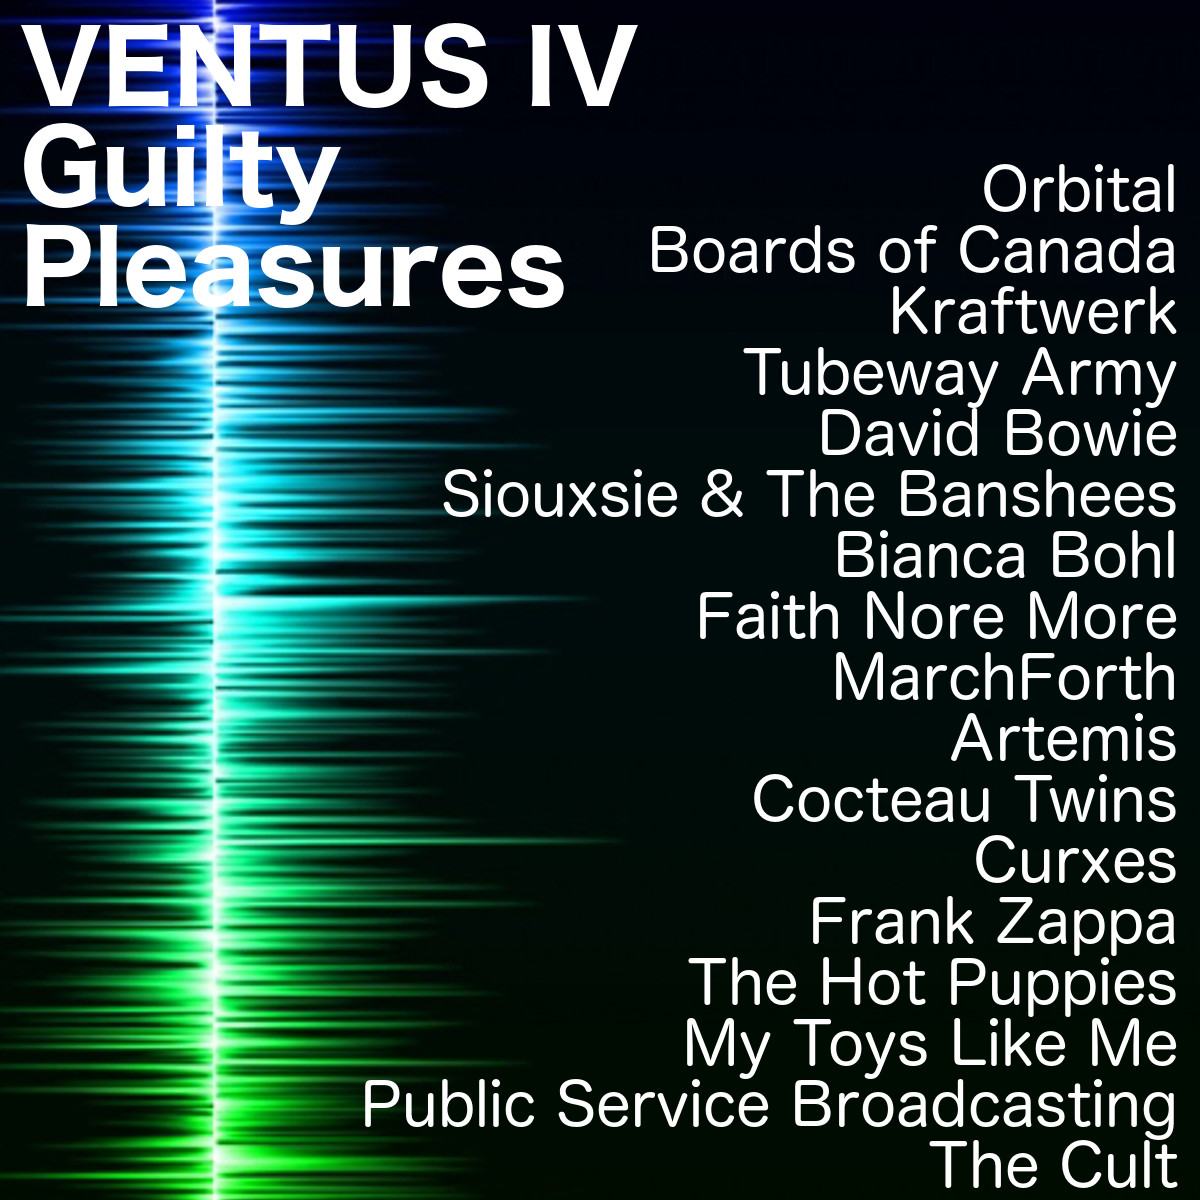 Ventus 4 Guilty Pleasures